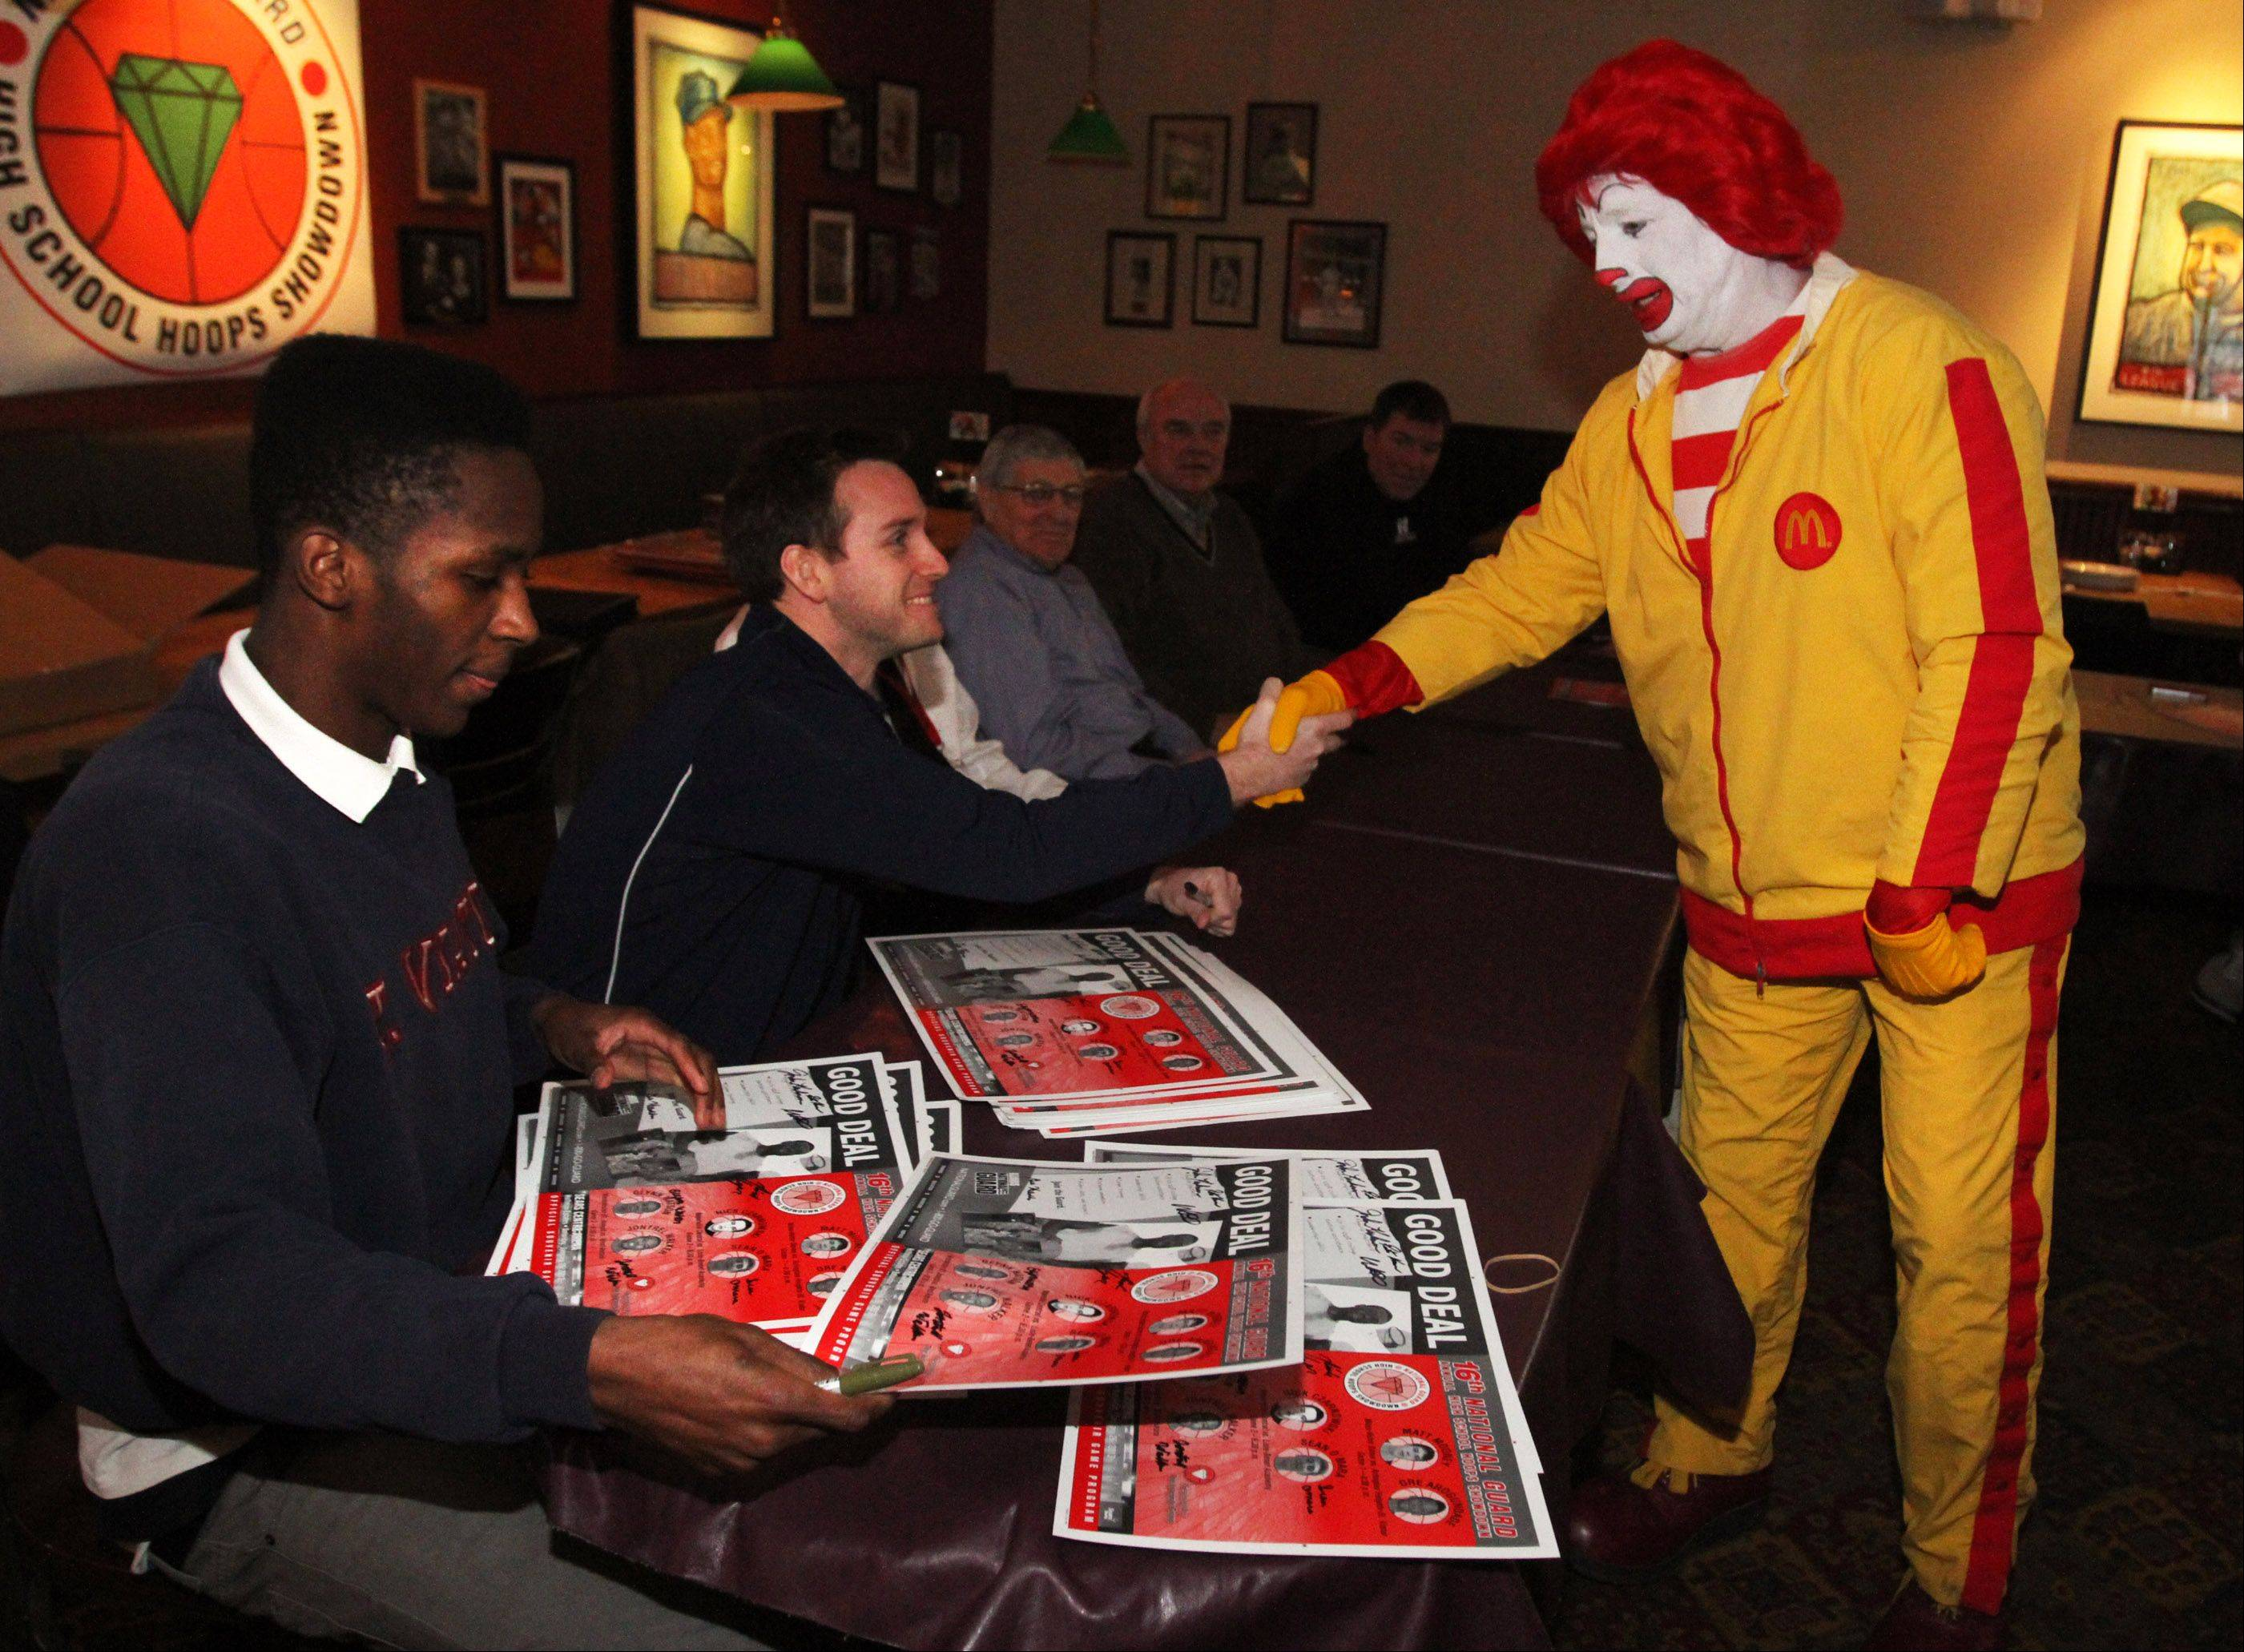 St. Viator boys basketball coach Mike Howland gets a hand from Ronald McDonald as Lions guard Arogundade signs posters during a news conference at Lou Malnati's Pizzeria in Schaumburg on Wednesday in advances of Saturday's National Guard High School Hoops Showdown.